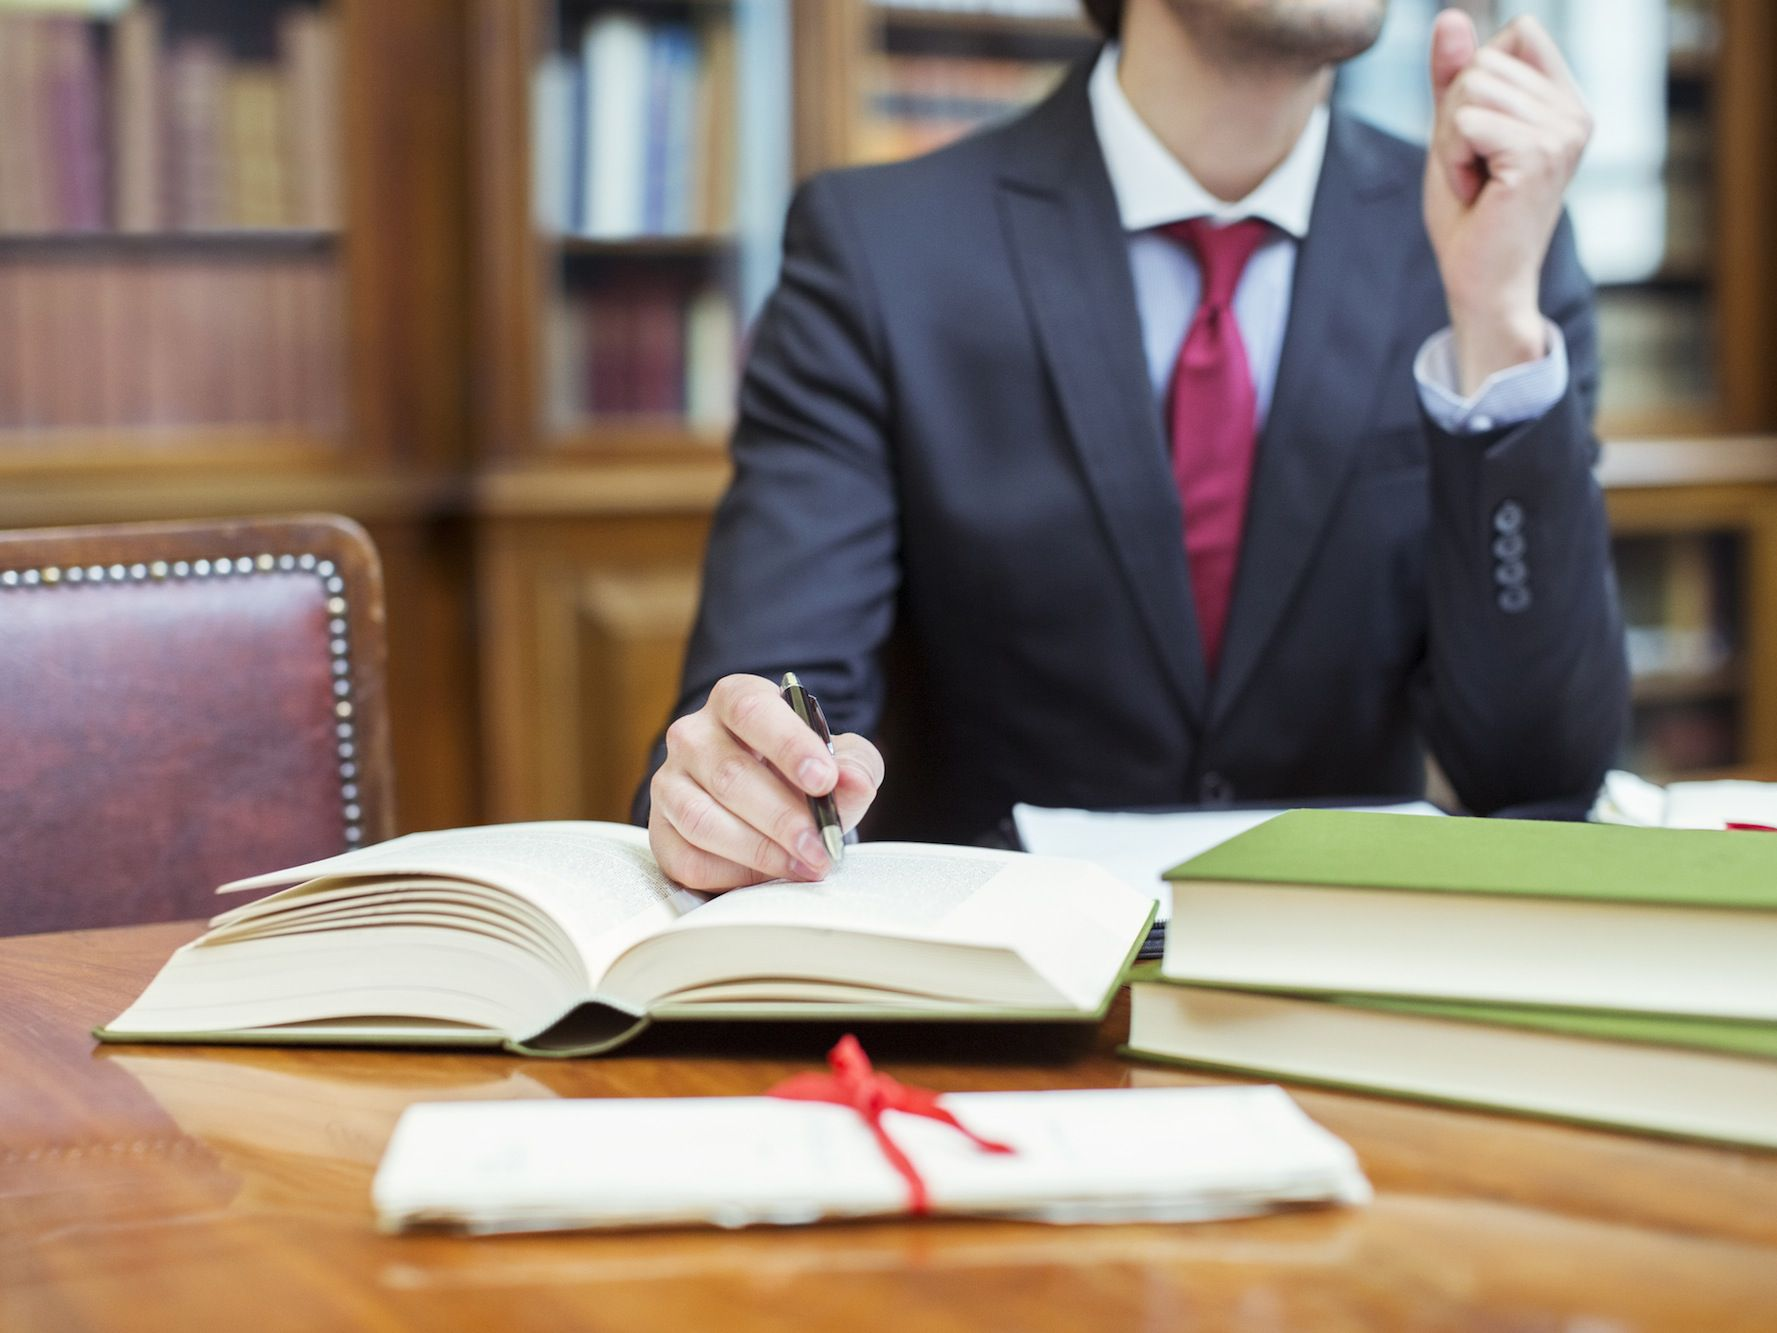 7 Ways to Improve Your Legal Drafting Skills